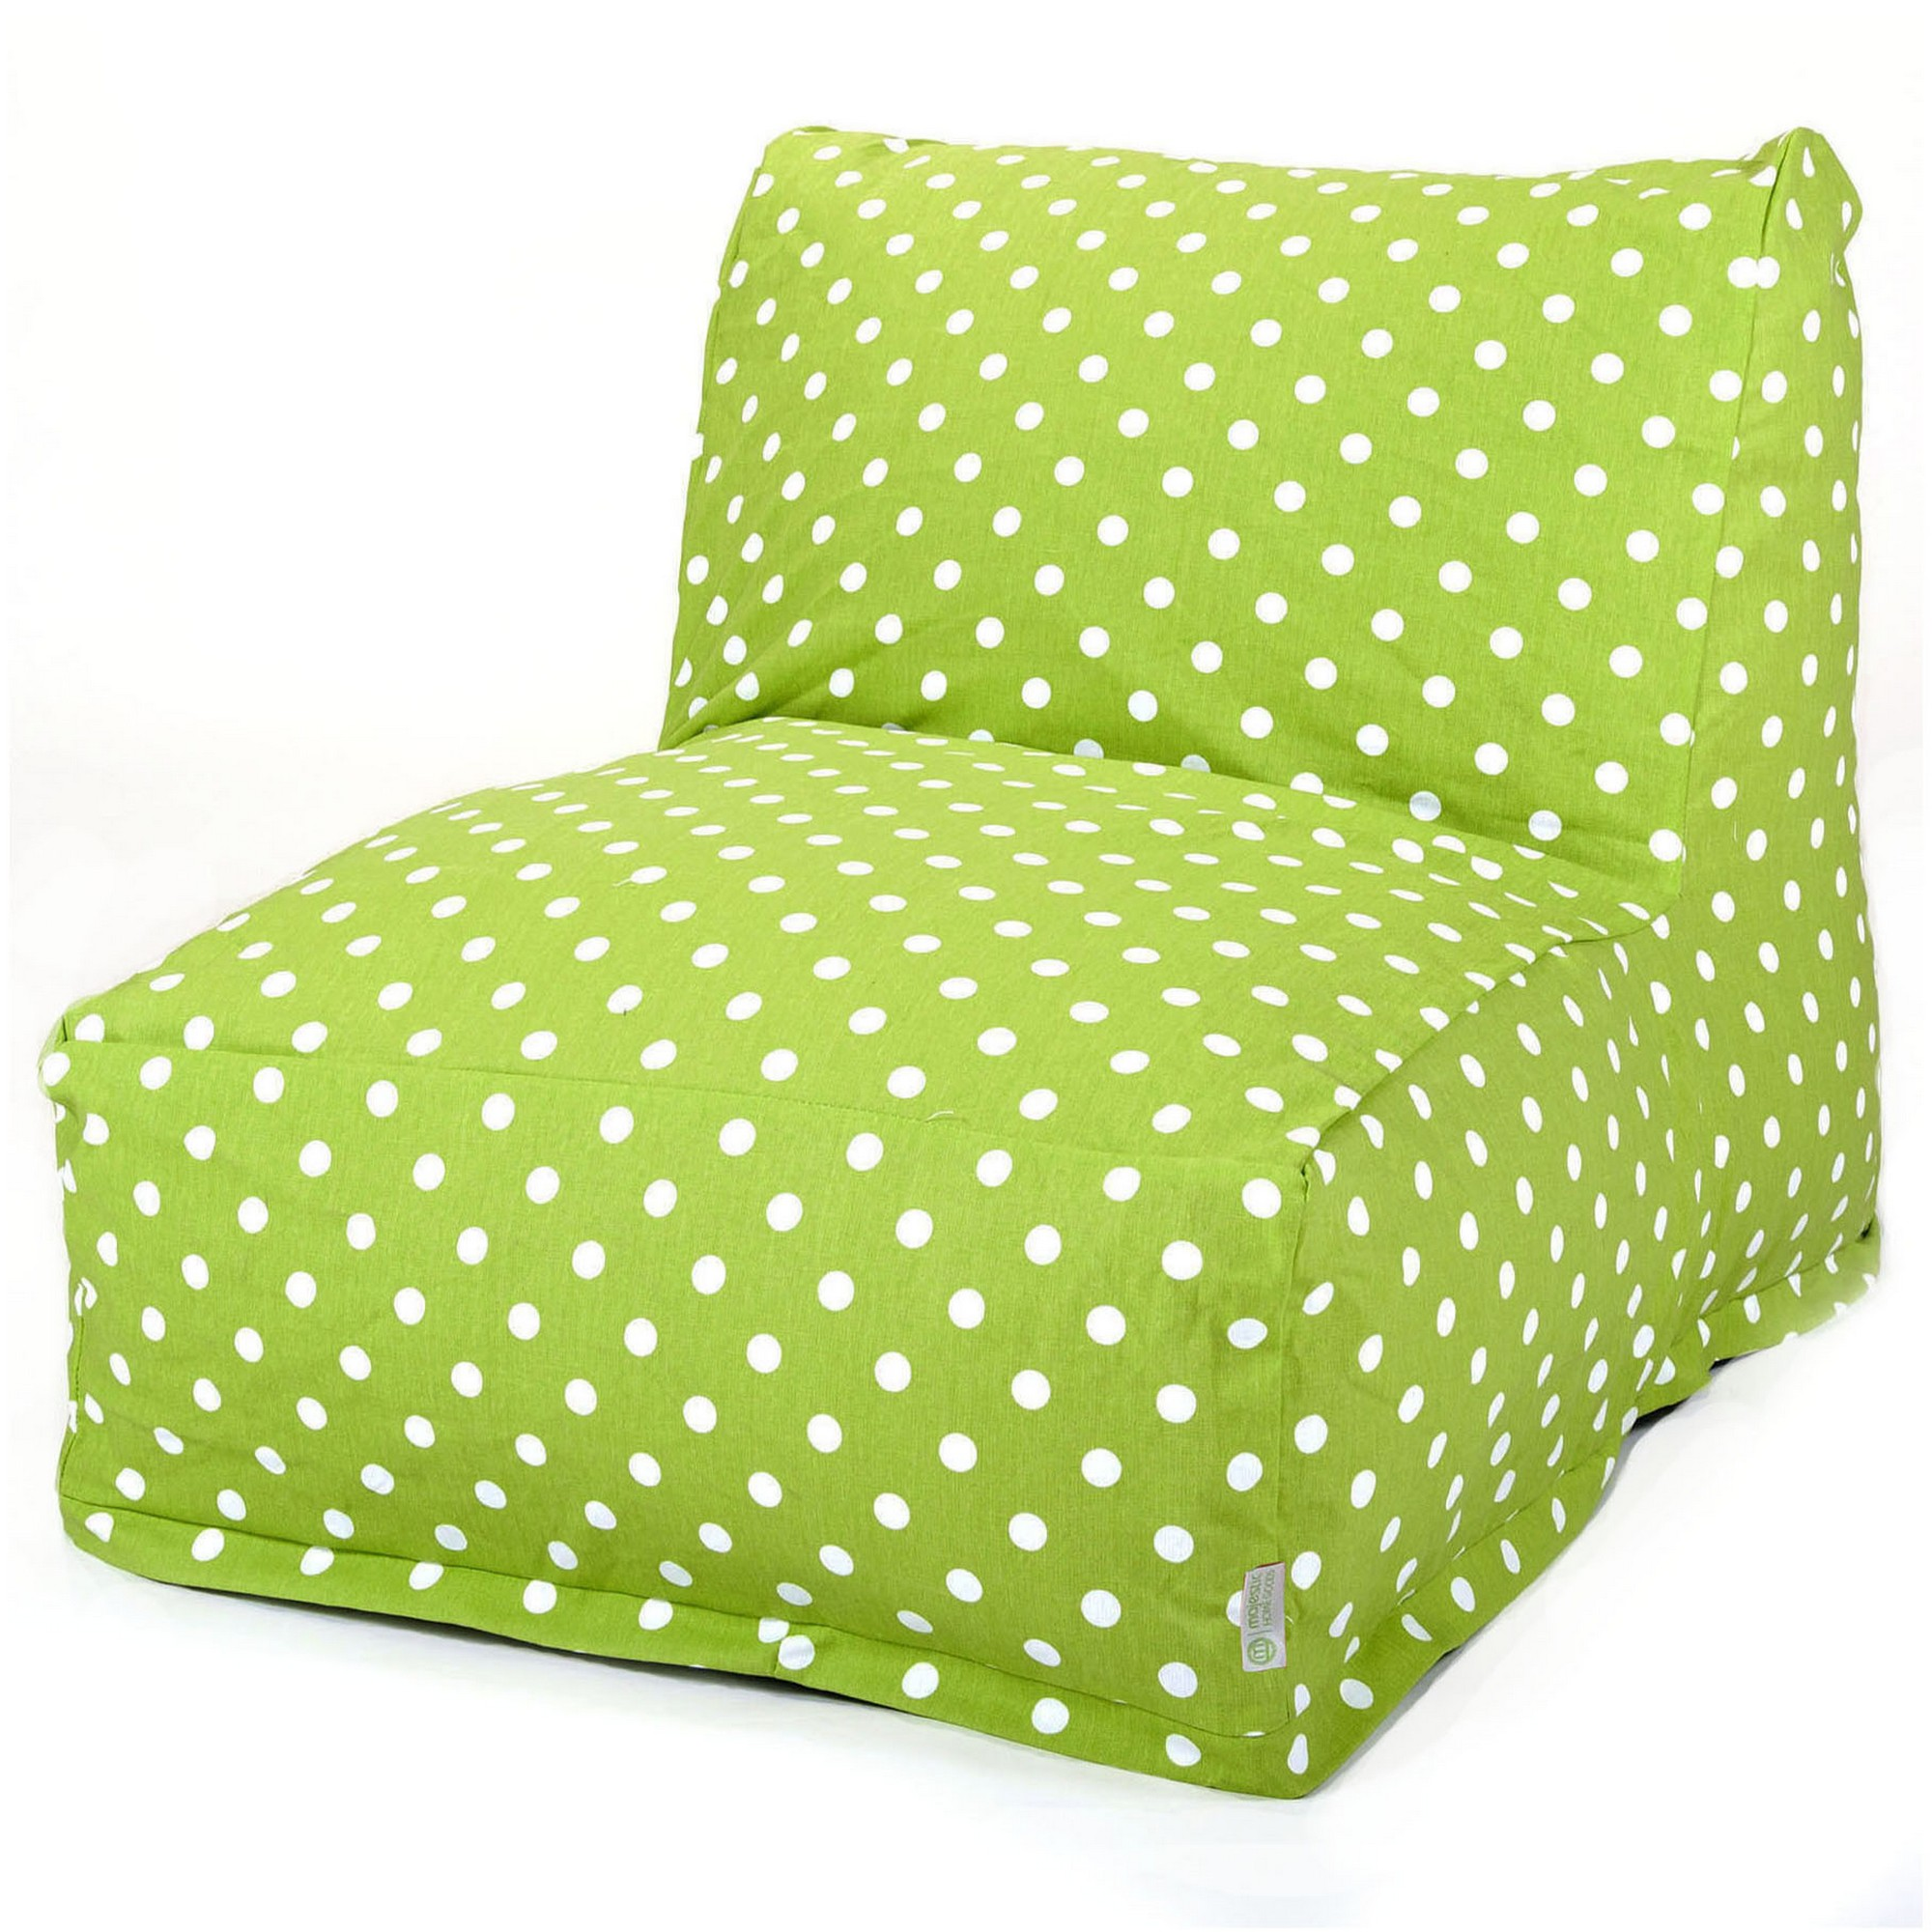 Majestic Home Goods Indoor Lime Small Polka Dot Chair Lounger Bean Bag 36 in L x 27 in W x 24 in H